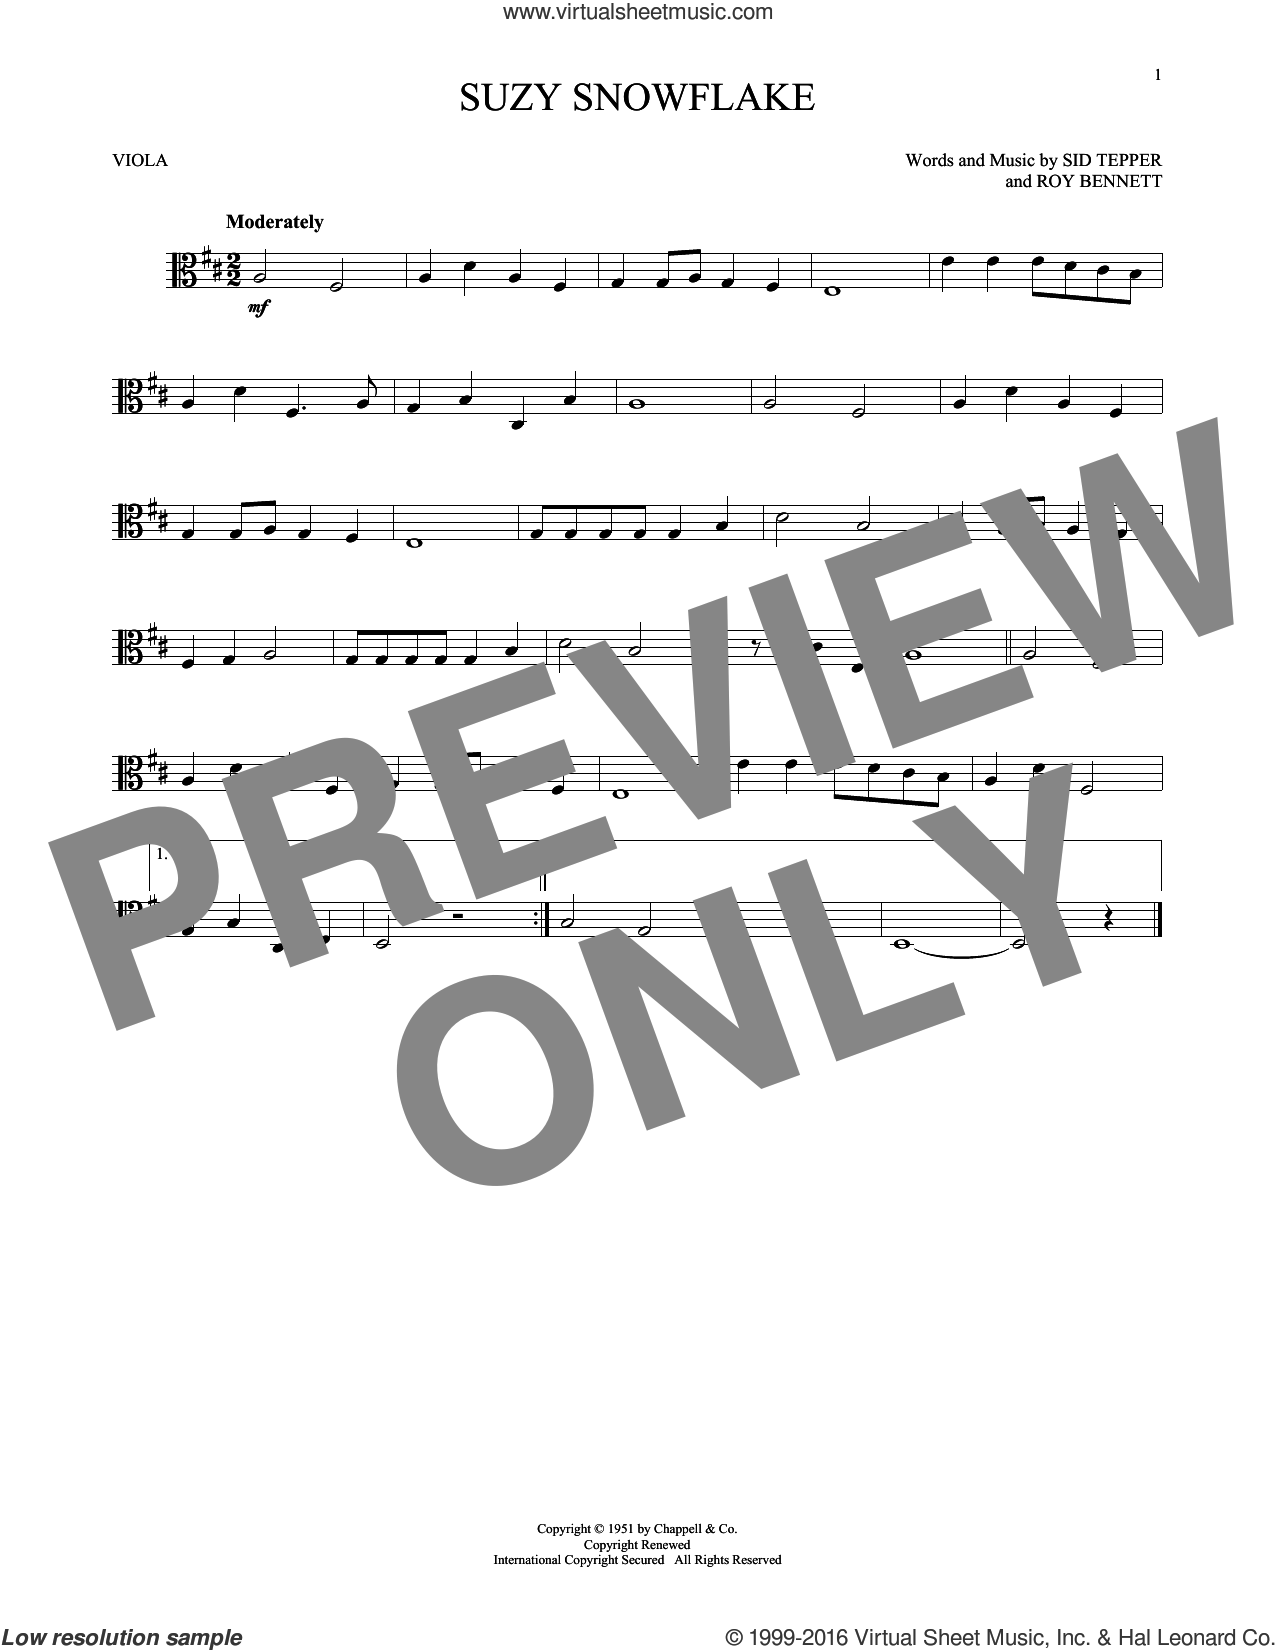 Suzy Snowflake sheet music for viola solo by Sid Tepper, Roy Bennett and Sid Tepper and Roy Bennett, intermediate skill level